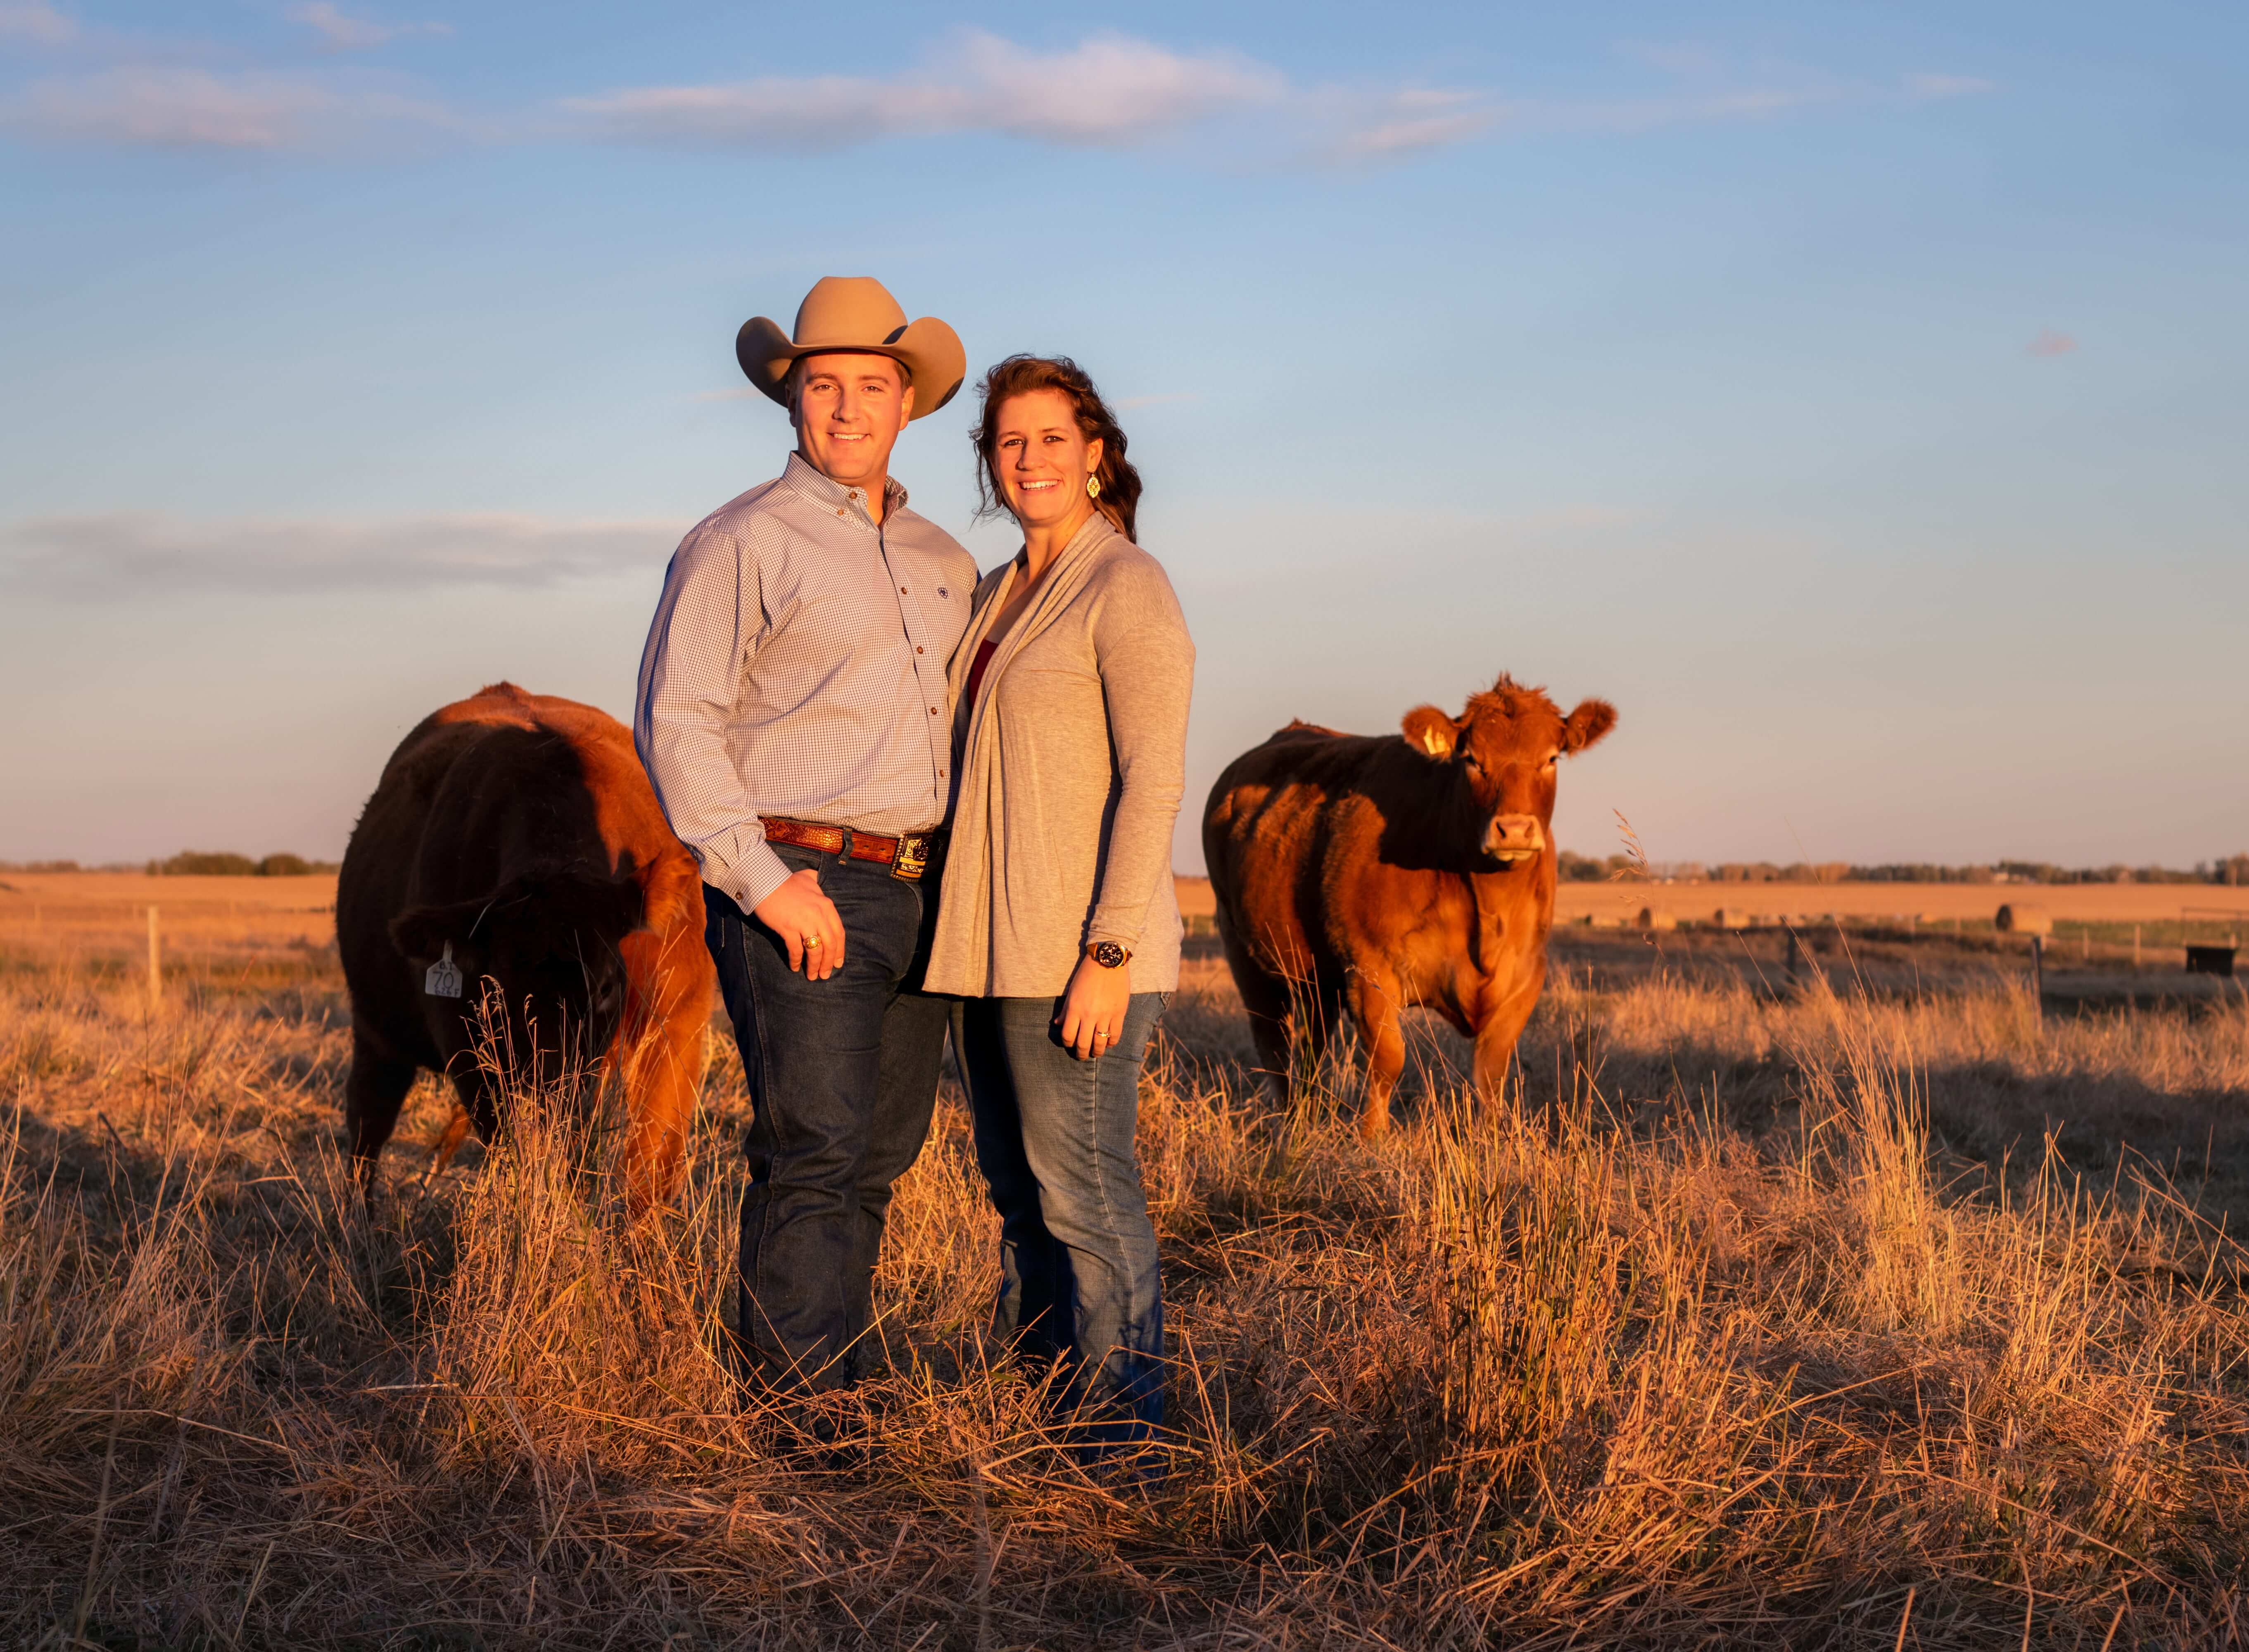 Rosie Dwight with her husband standing in the farm field